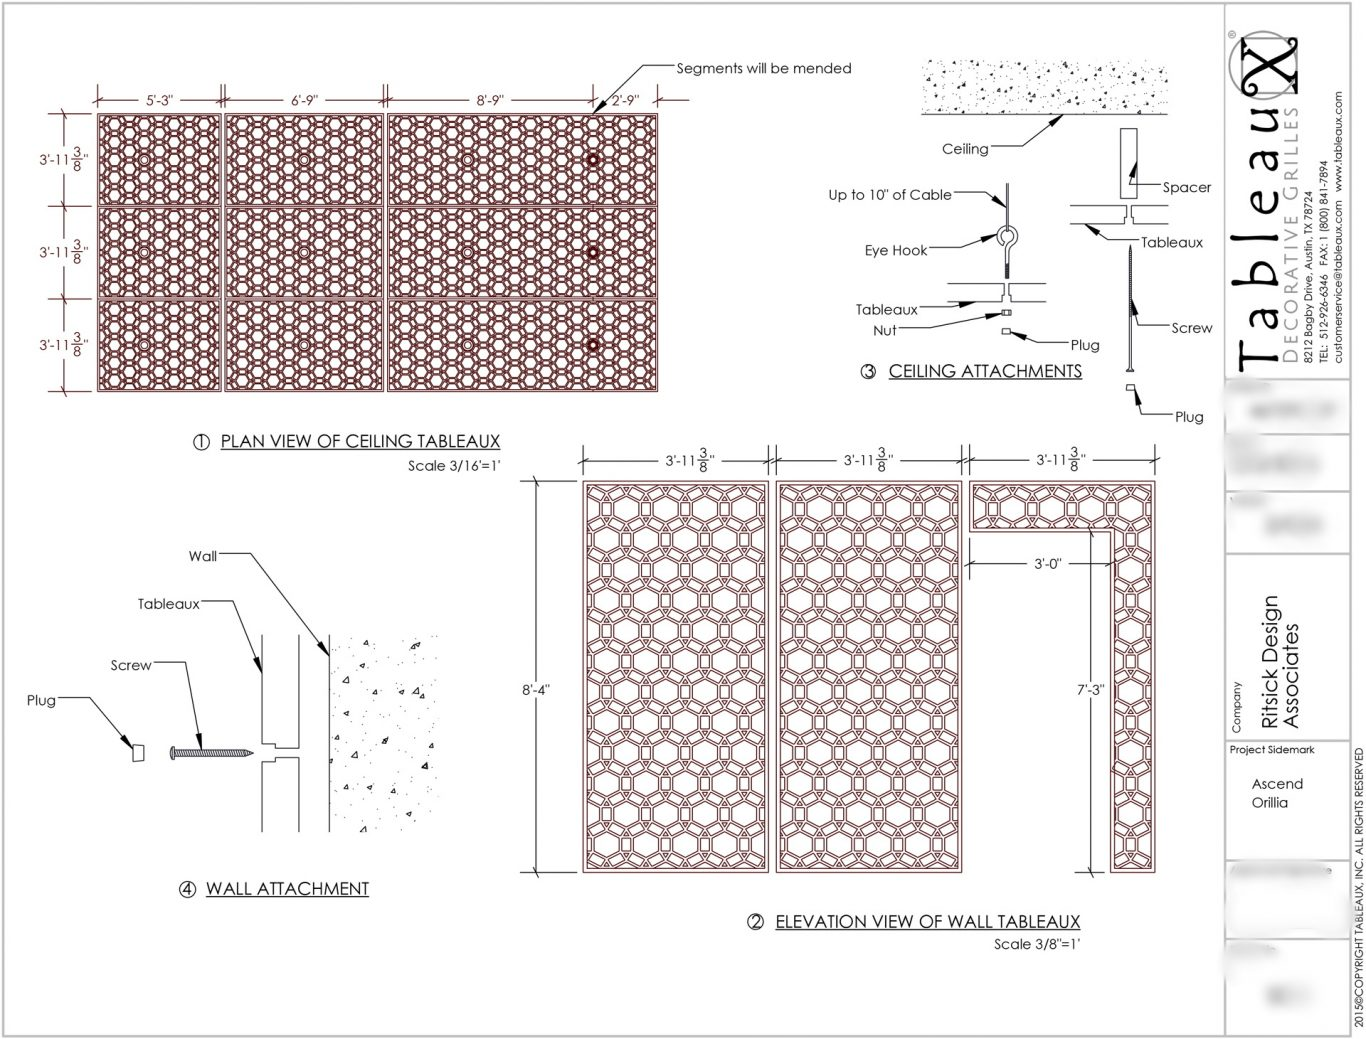 Tableaux Decorative Grilles Initial Shop Drawing for Champlain Waterfront Hotel